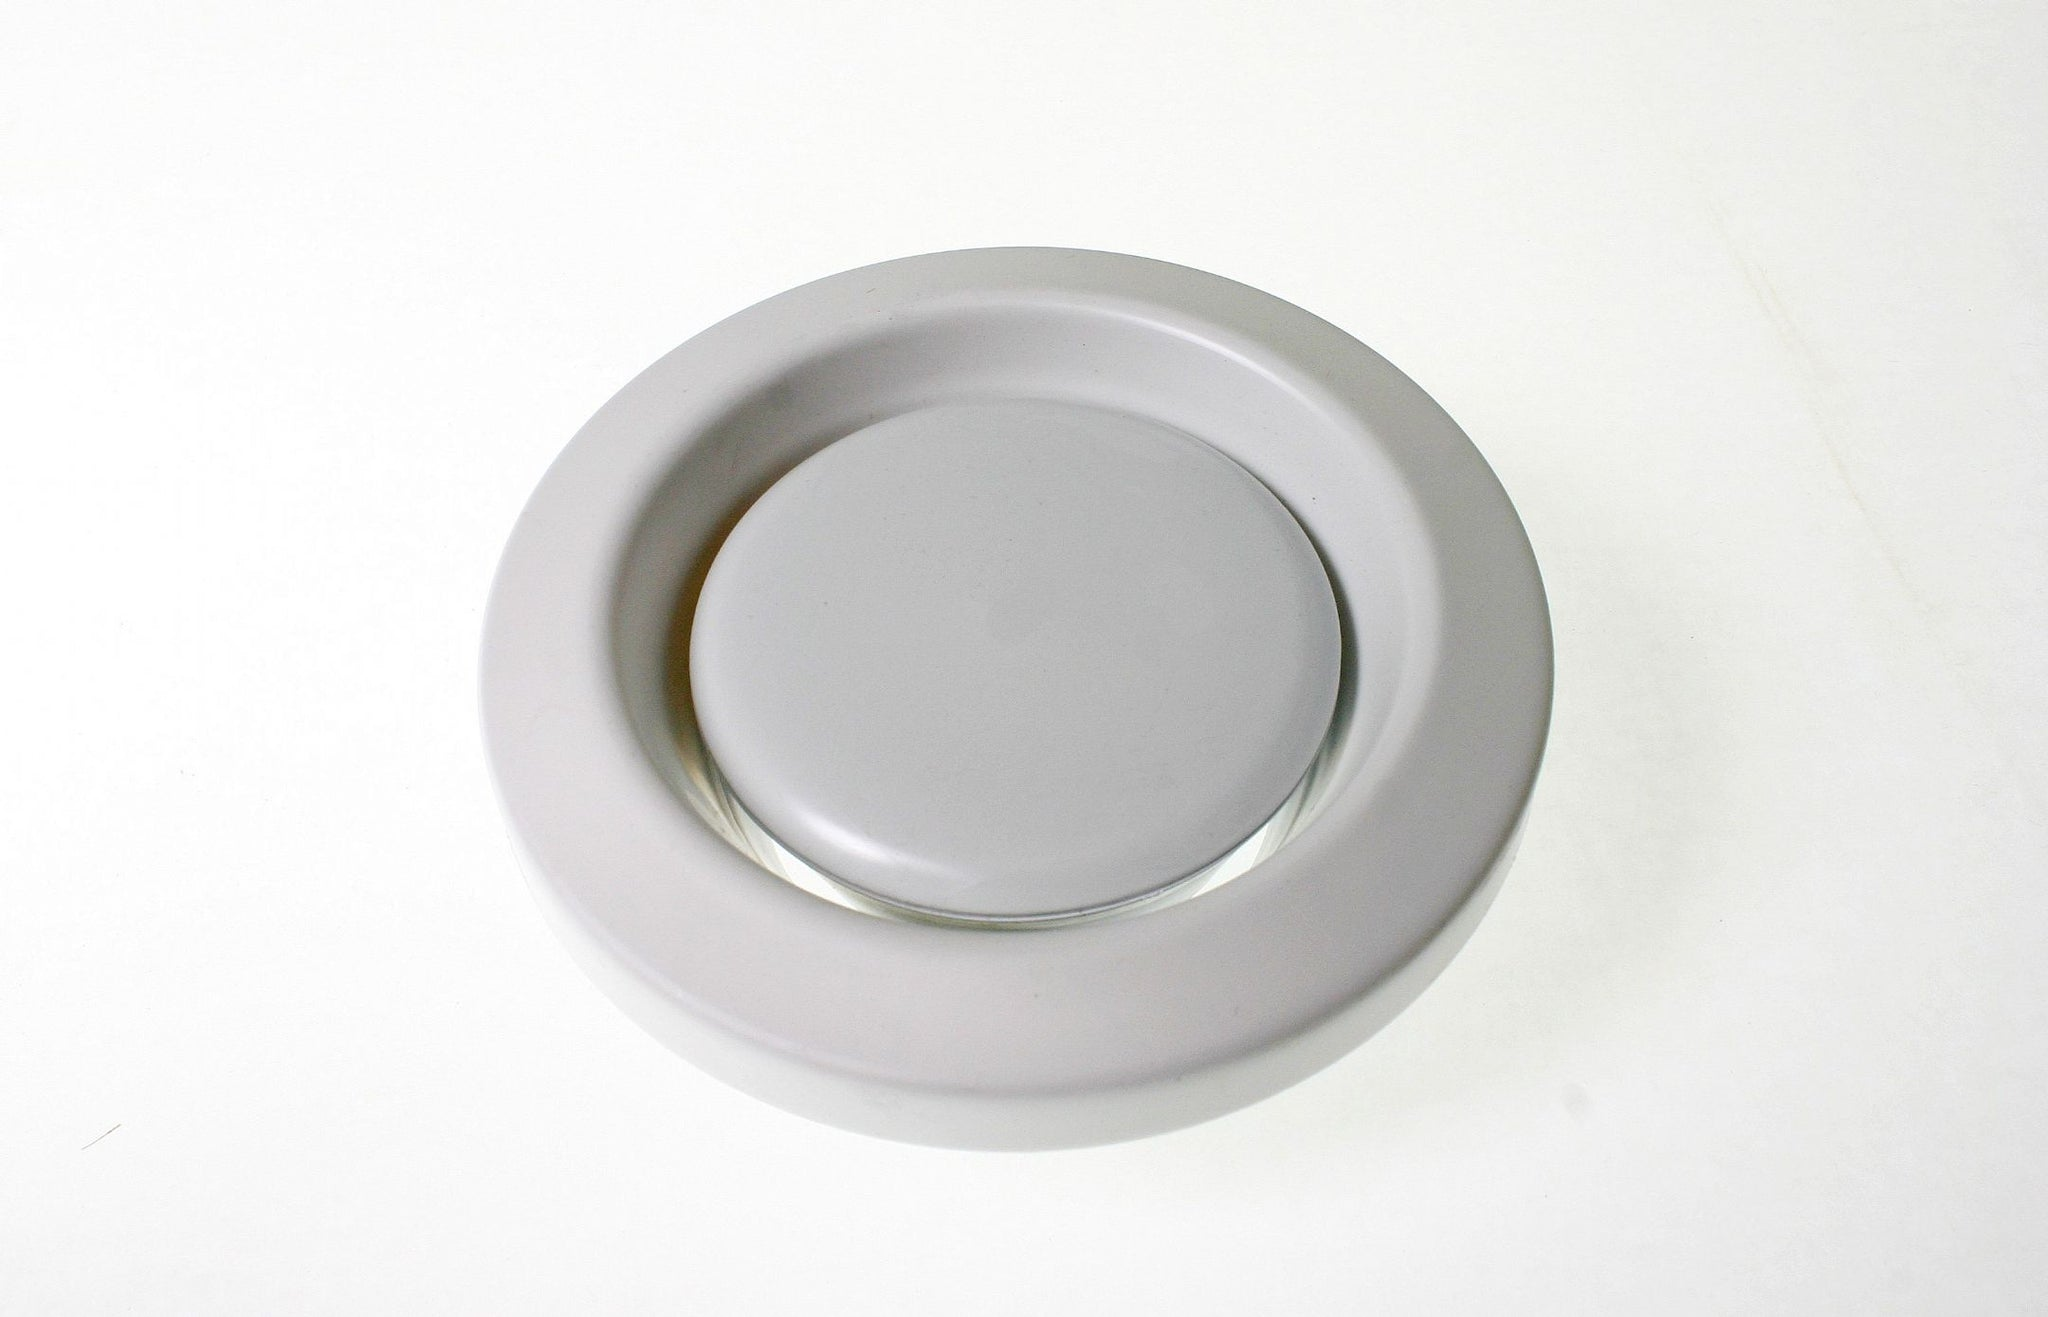 Adjustable Circular Air Diffuser, Bathroom Vent VMP60 (Product Code: 01060149)